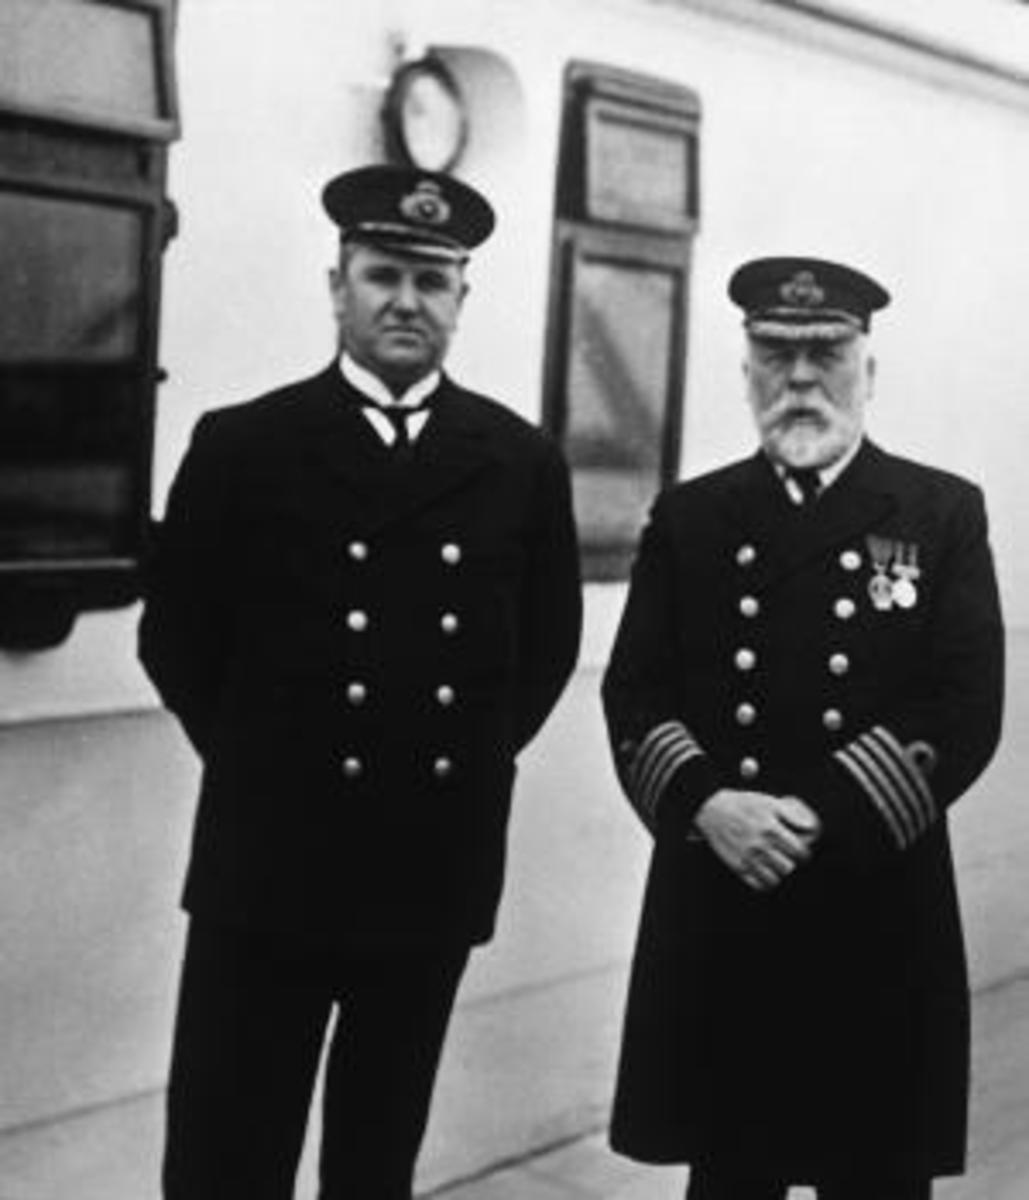 Purser Hugh Walter McElroy and Captain Edward J. Smith aboard the Titanic during the run from Southampton to Queenstown, England. The man who took the photograph, F.M. Browne, got off at Queenstown, three days before the ship hit an iceberg and sank. (Credit: Ralph White/Corbis via Getty Images)